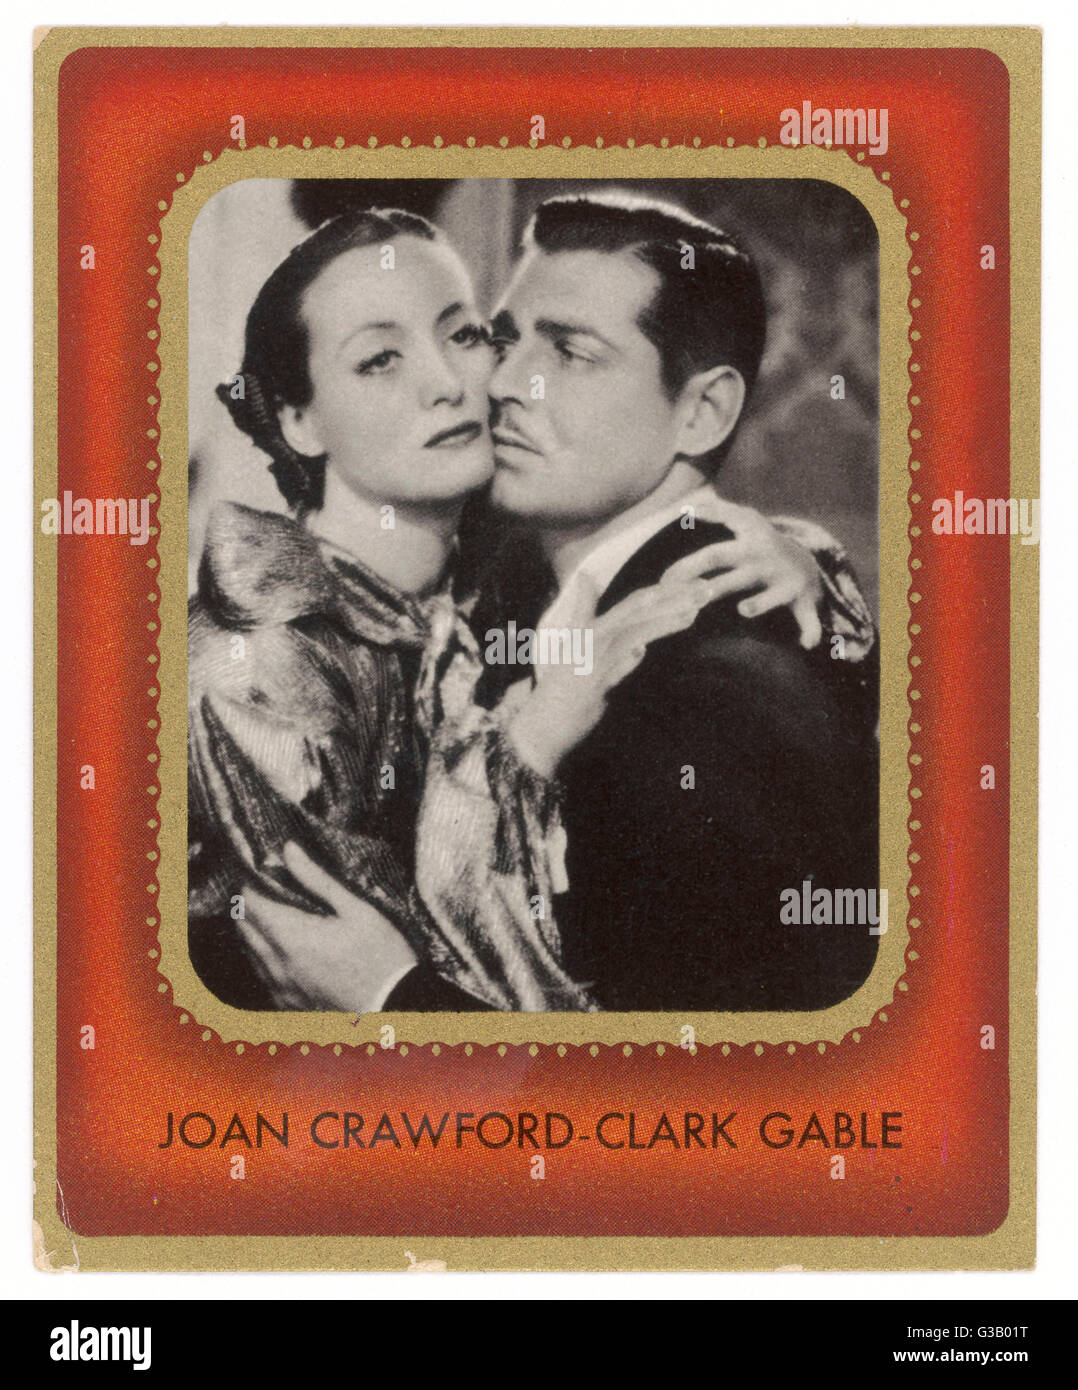 JOAN CRAWFORD  American film actress with Clark Gable       Date: 1908 - - Stock Image